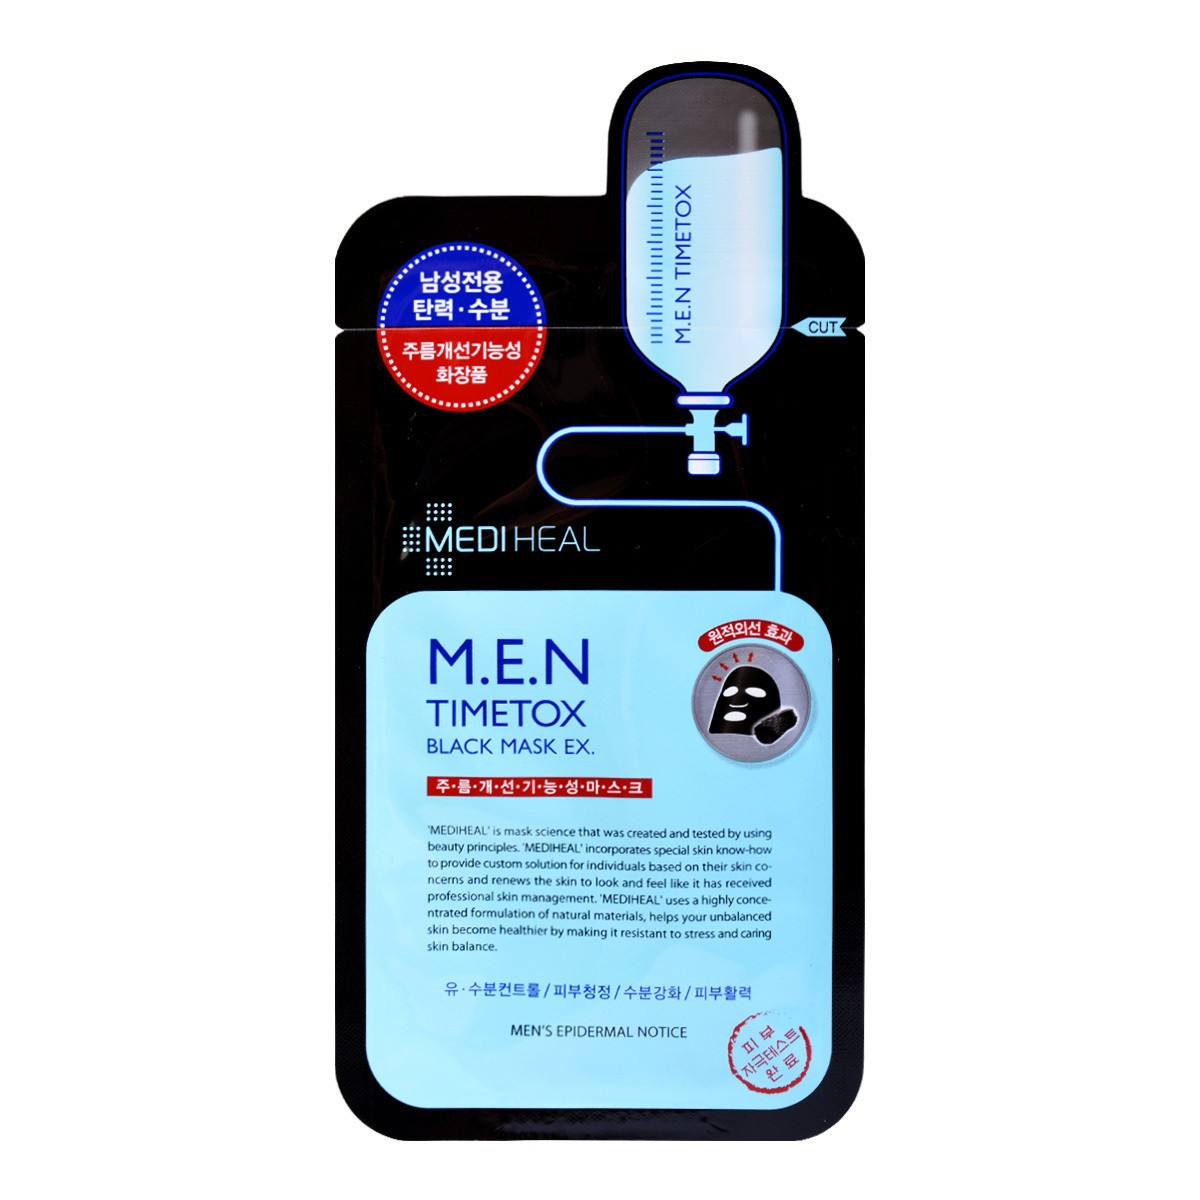 Yamibuy.com:Customer reviews:MEDIHEAL M.E.N Timetox Charcoal-Mineral Mask 1sheet